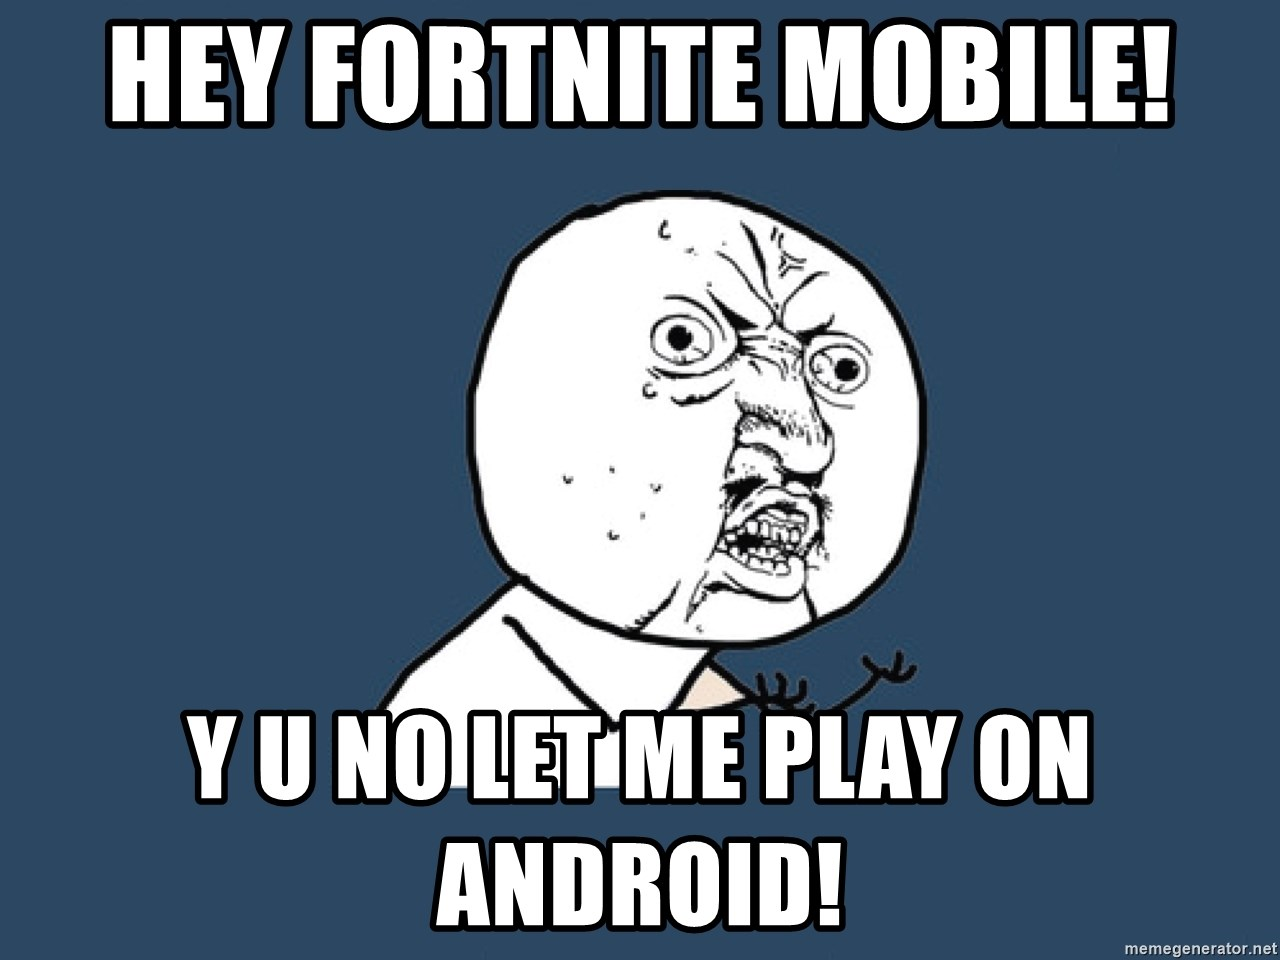 Y U No - Hey Fortnite Mobile! Y U No let me play on Android!